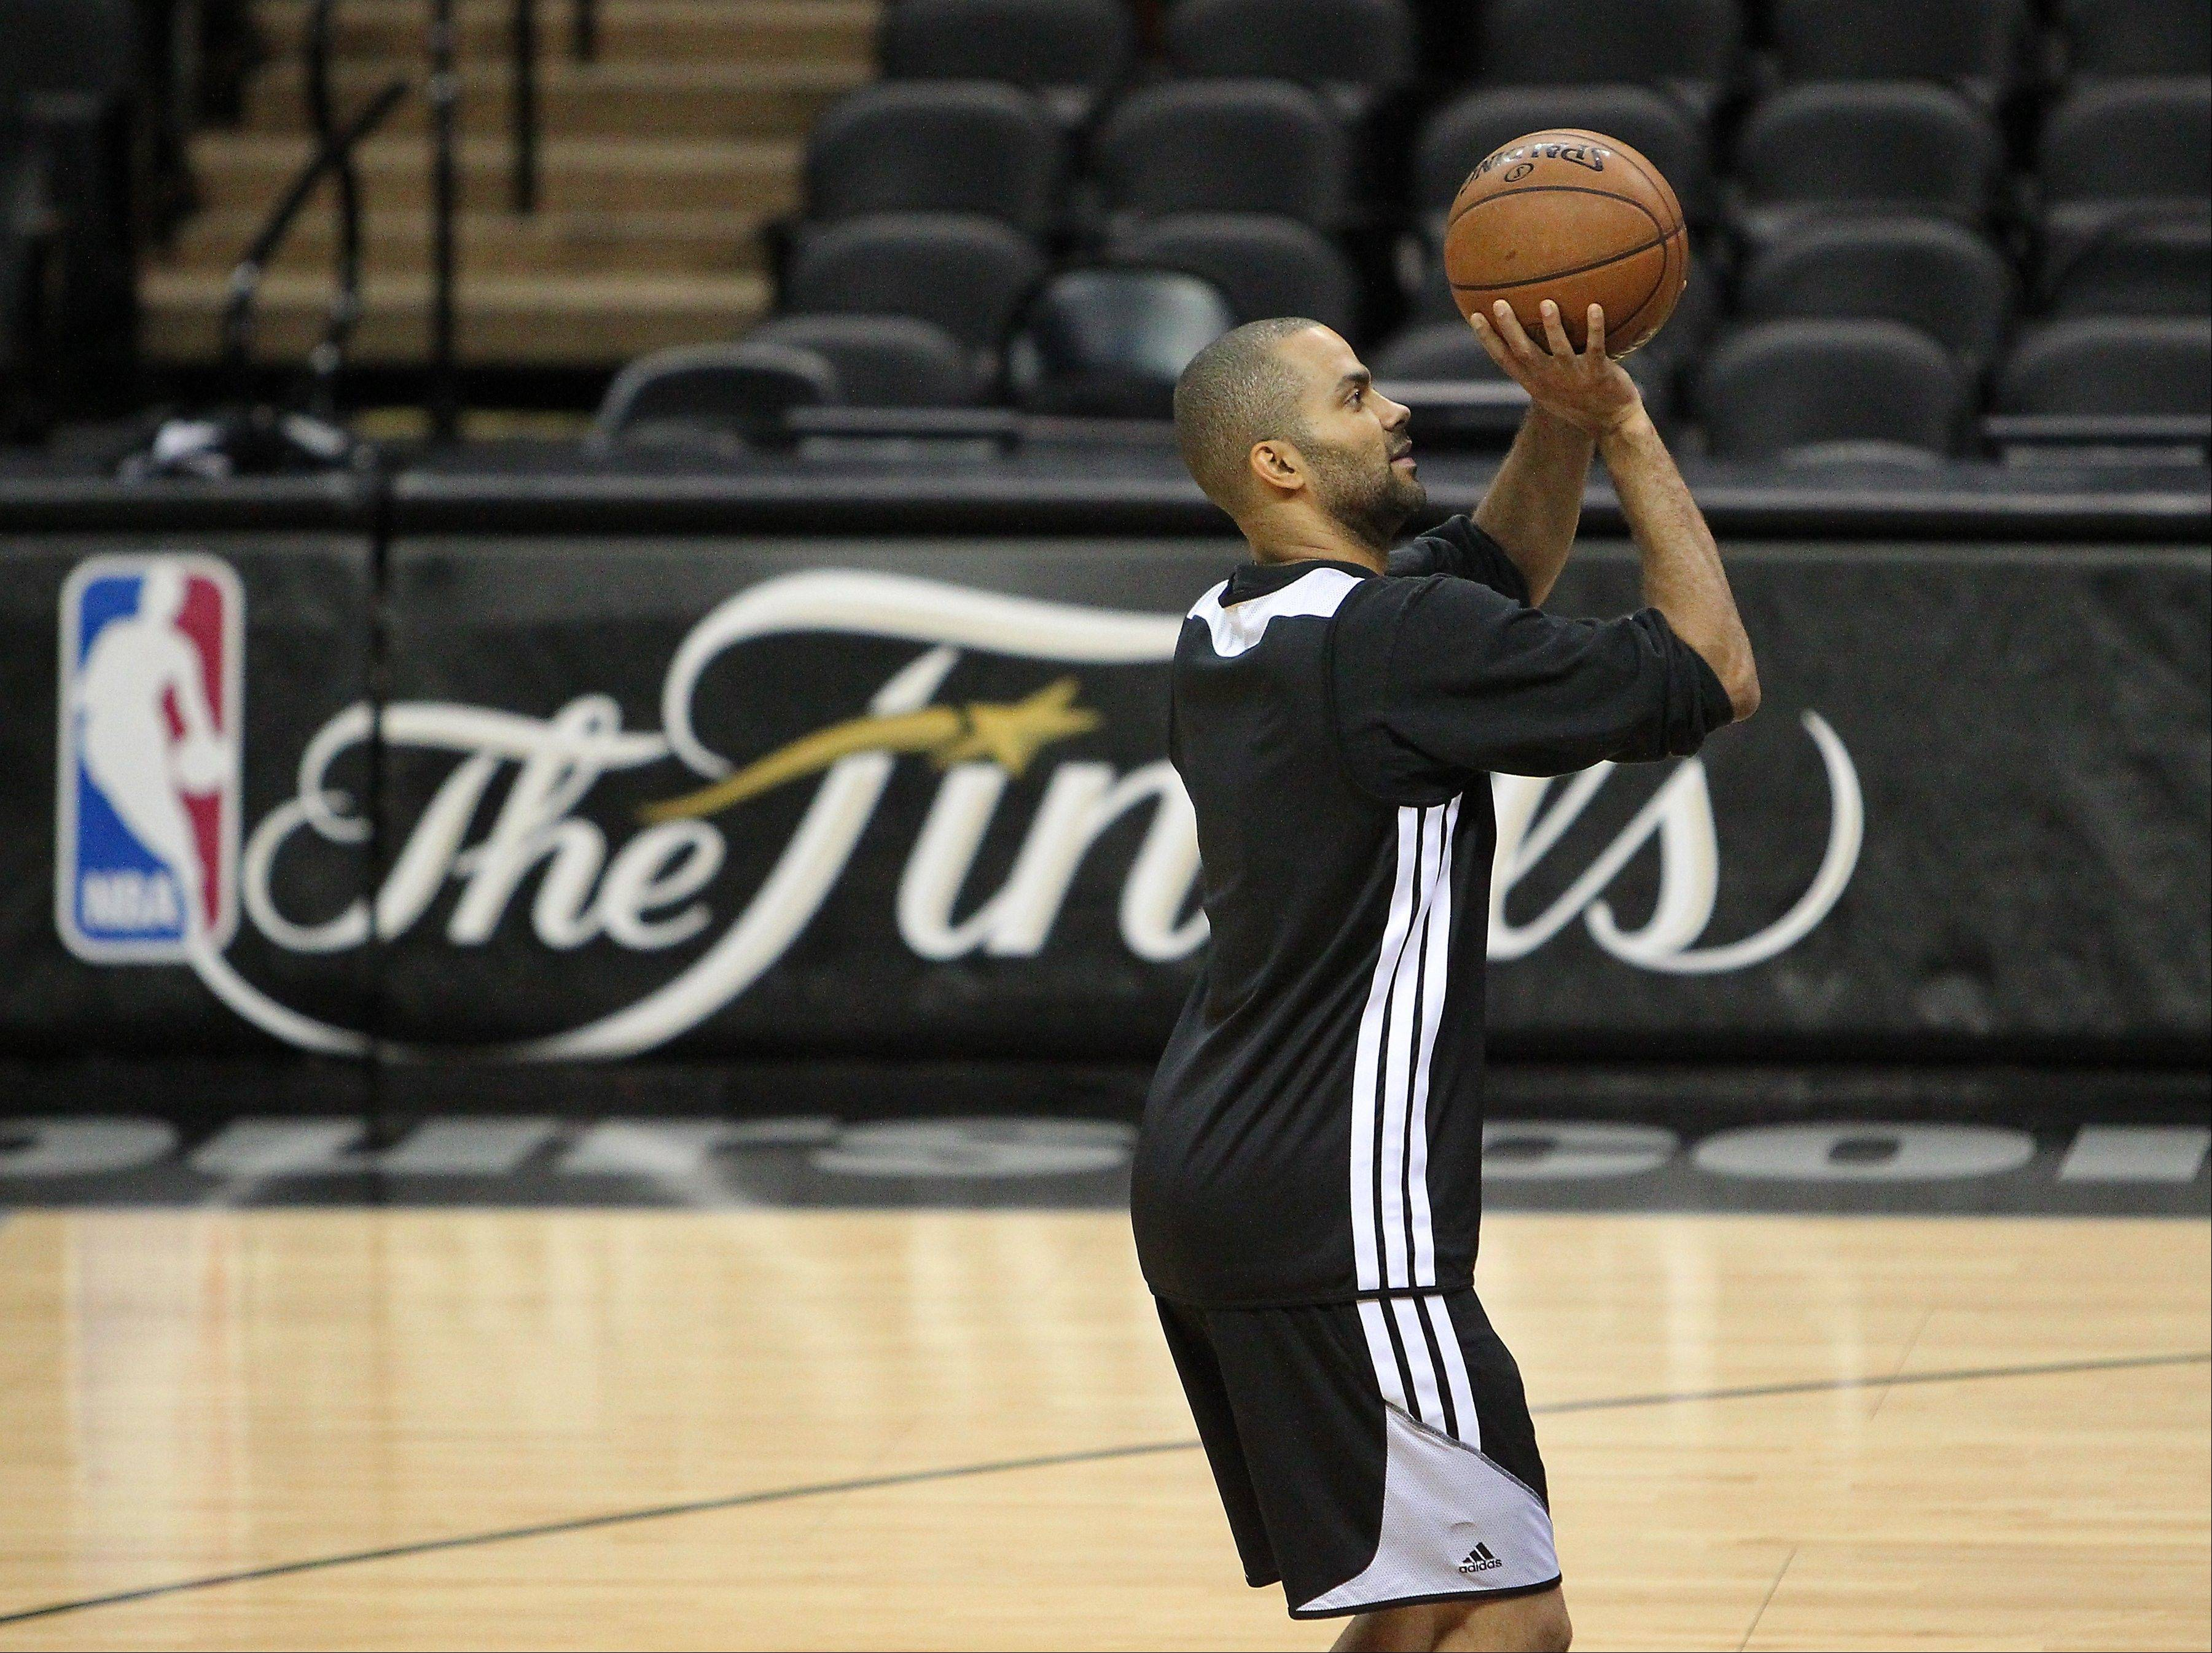 San Antonio Spurs guard Tony Parker shoots during NBA basketball practice, Saturday, June 15, 2013, in San Antonio. The Spurs host the Miami Heat in Game 5 of the NBA Finals on Sunday, with the best-of-seven games series even at 2-2. (AP Photo/El Nuevo Herald, David Santiago) MAGS OUT